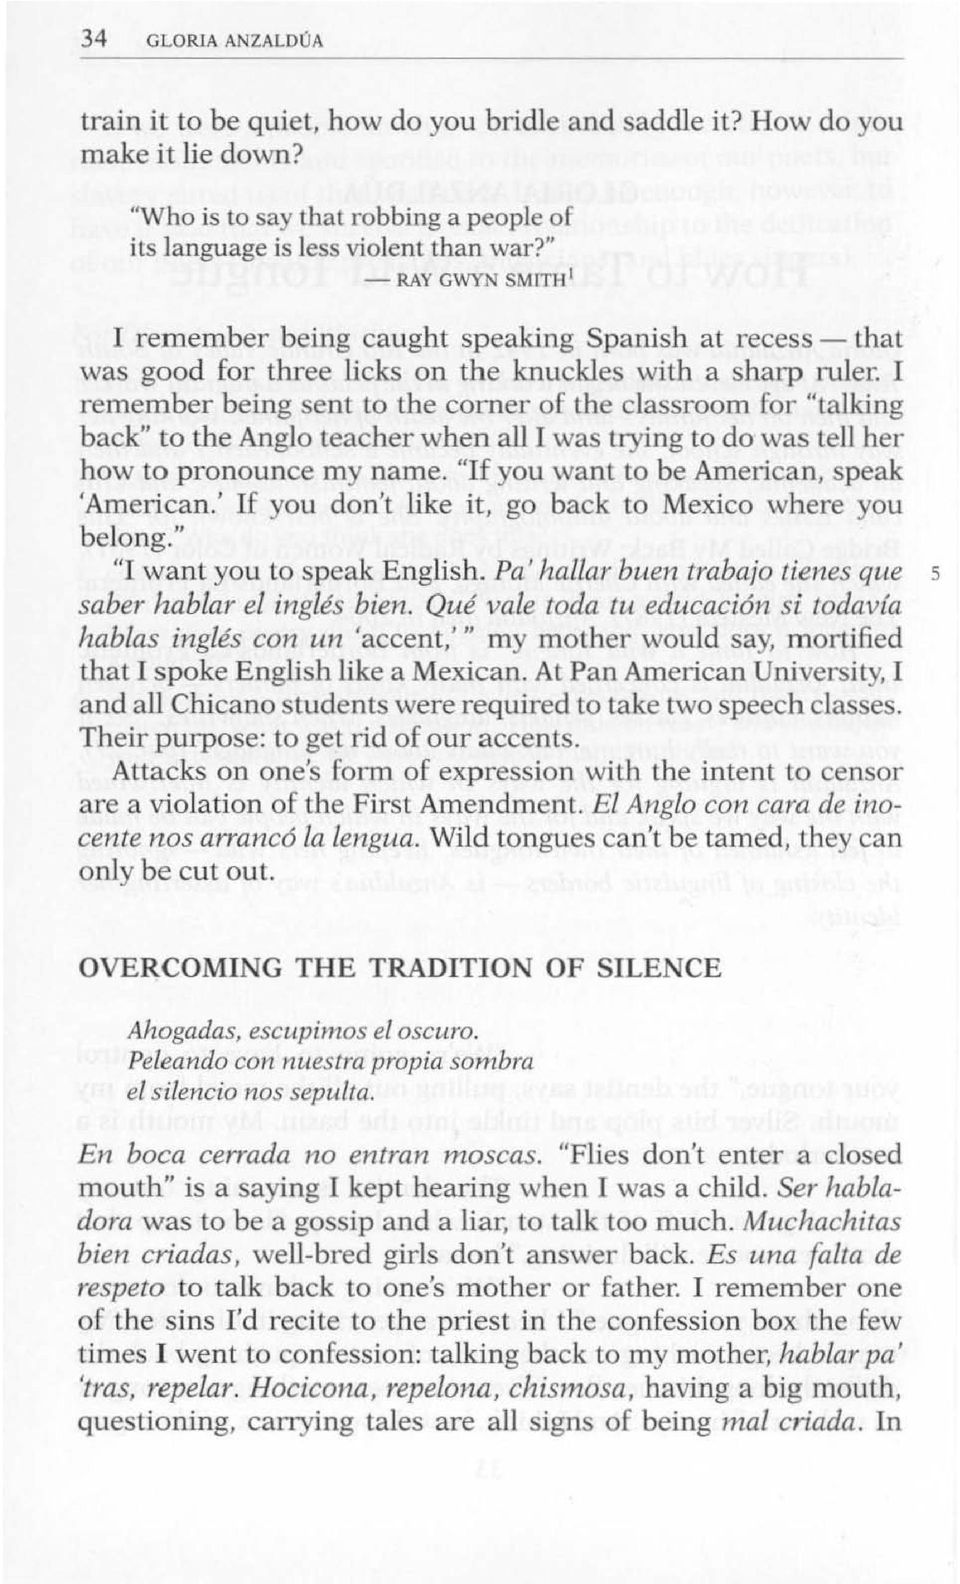 how to tame a wild tounge How to tame a wild tongue summary and analysis, focuses on the work of  american poet, critic, novelist and essayist gloria anzaldua her works generally .